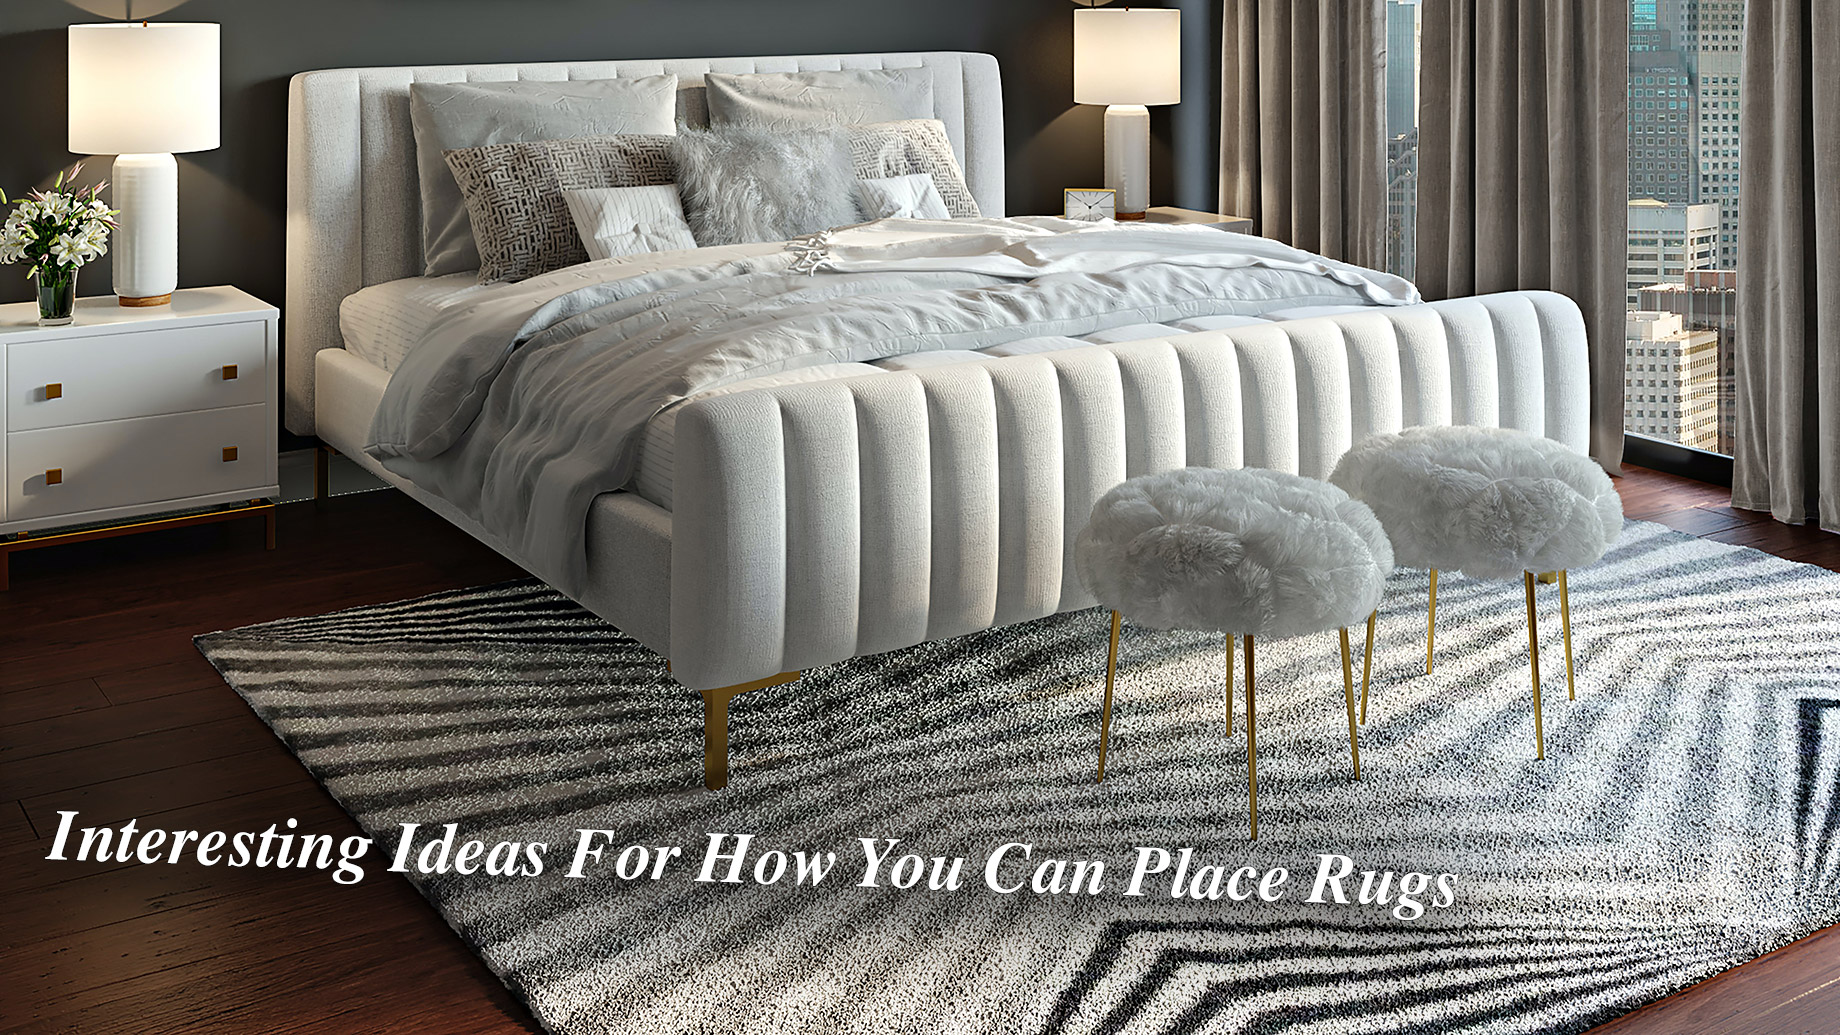 Interesting Ideas For How You Can Place Rugs